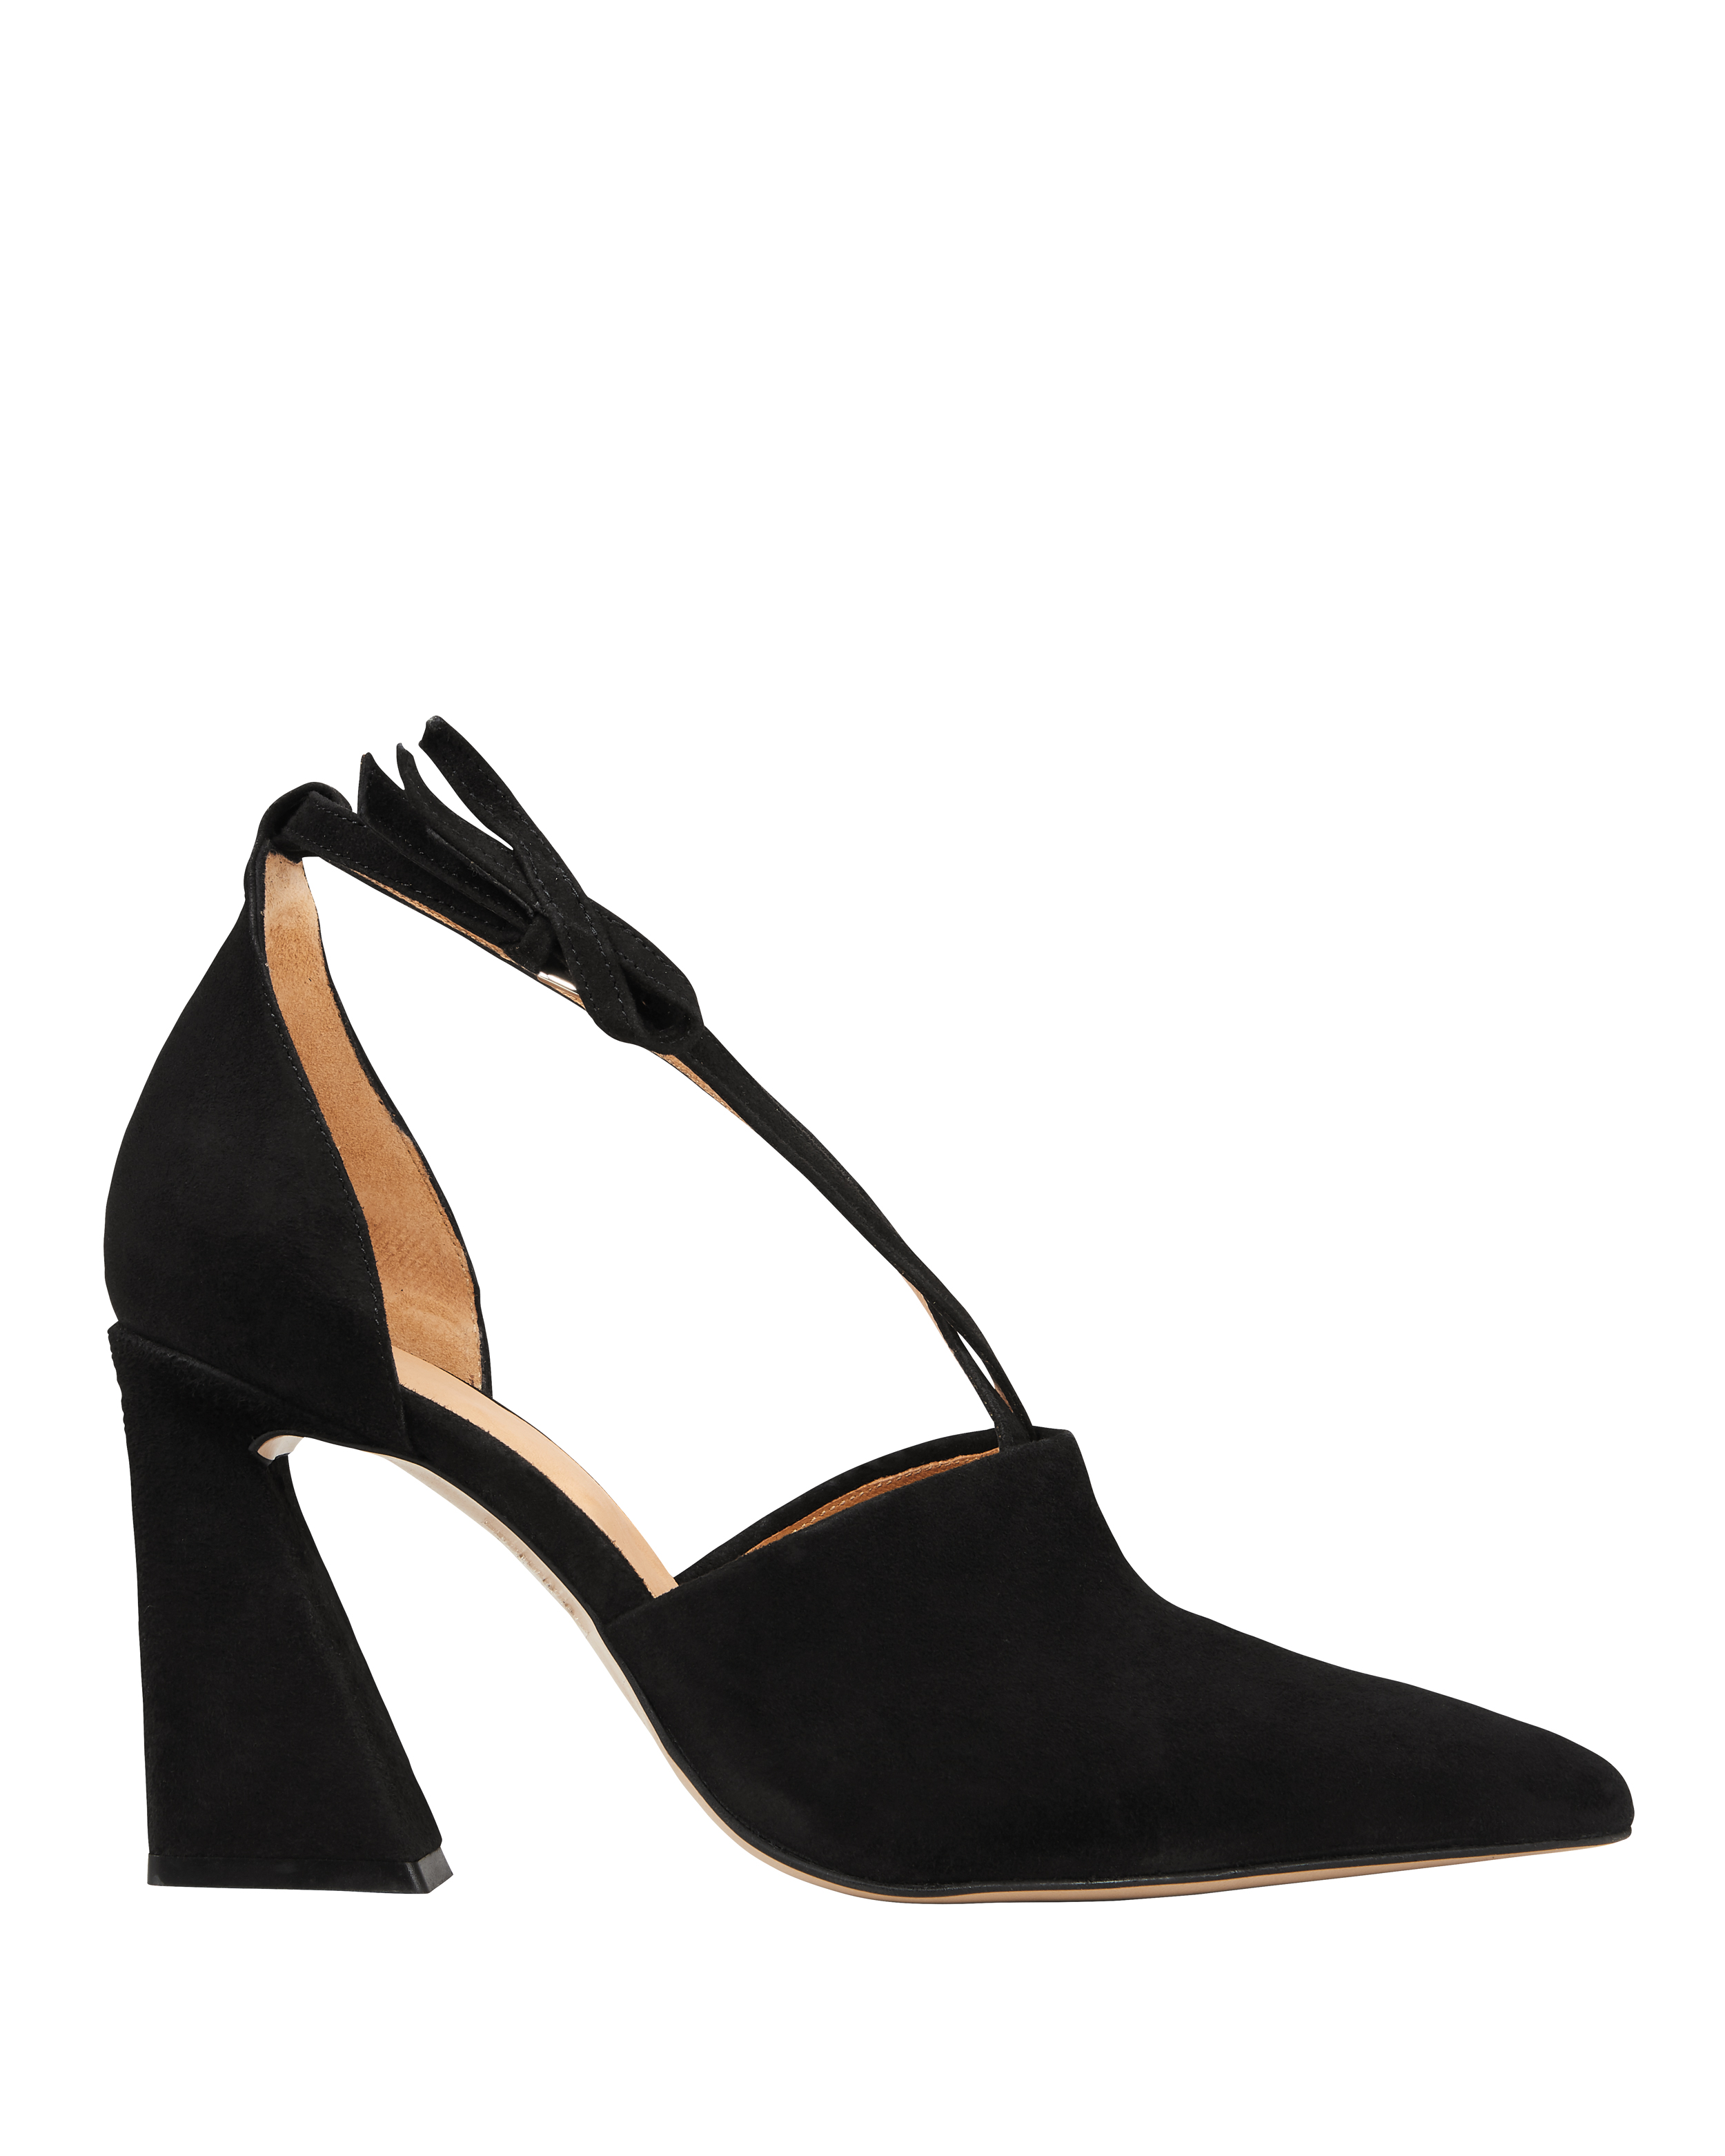 Lina Suede Black Pumps by Ganni